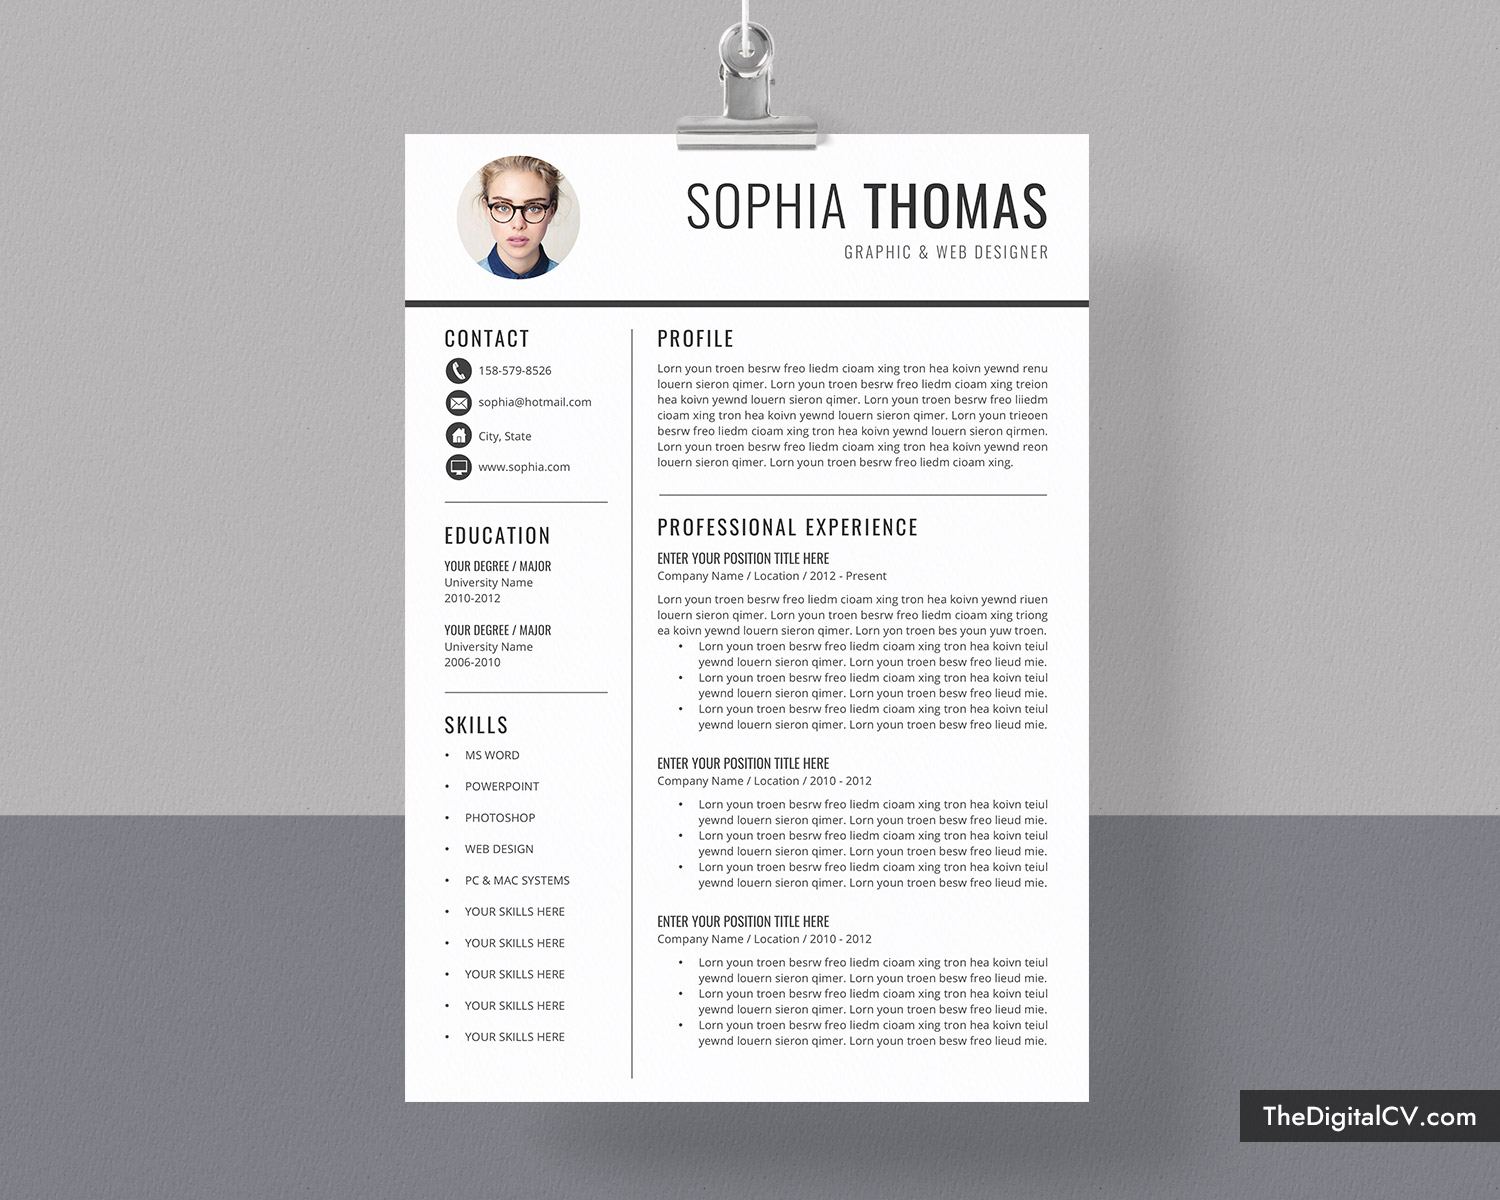 Use this guide to learn about professional development opportunities, internships, and other ways to build skills as a grad student. Professional Resume Template Cv Template Curriculum Vitae Modern Resume Format Ms Word Resume Fresh Graduate Resume Template Student Resume Template 1 Page 2 Page 3 Page Resume Instant Download Thedigitalcv Com